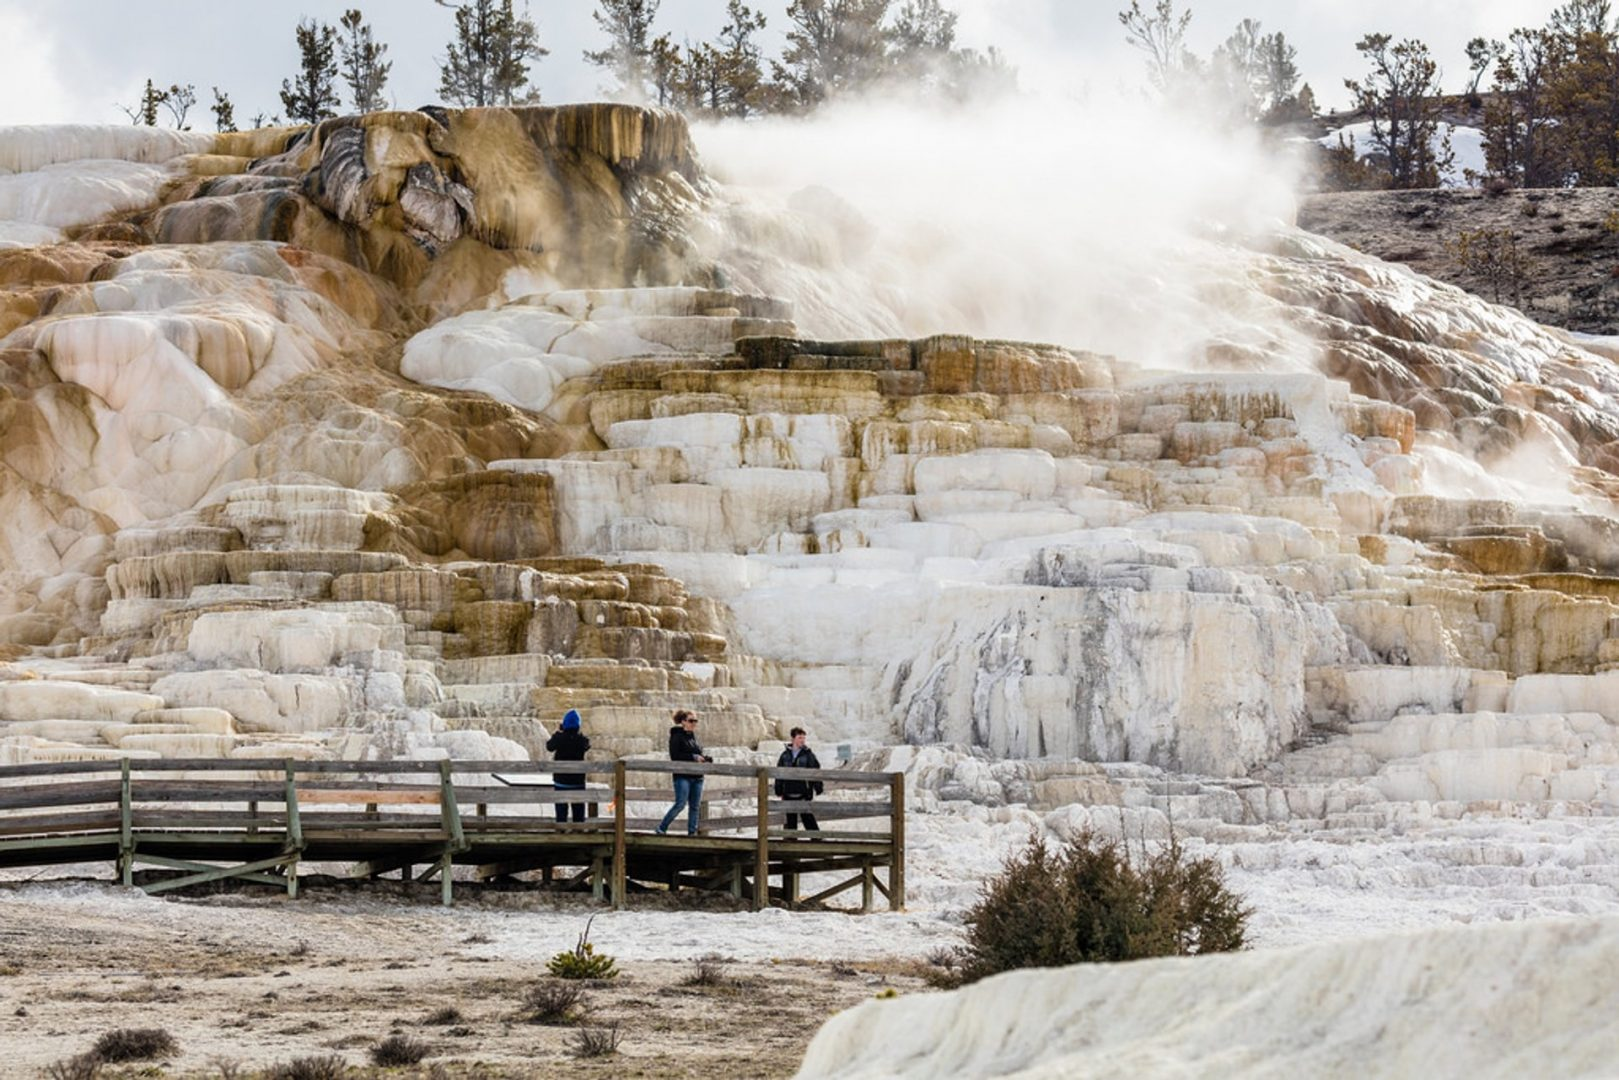 Mammoth Hot Springs, Yellowstone, U.S.A.